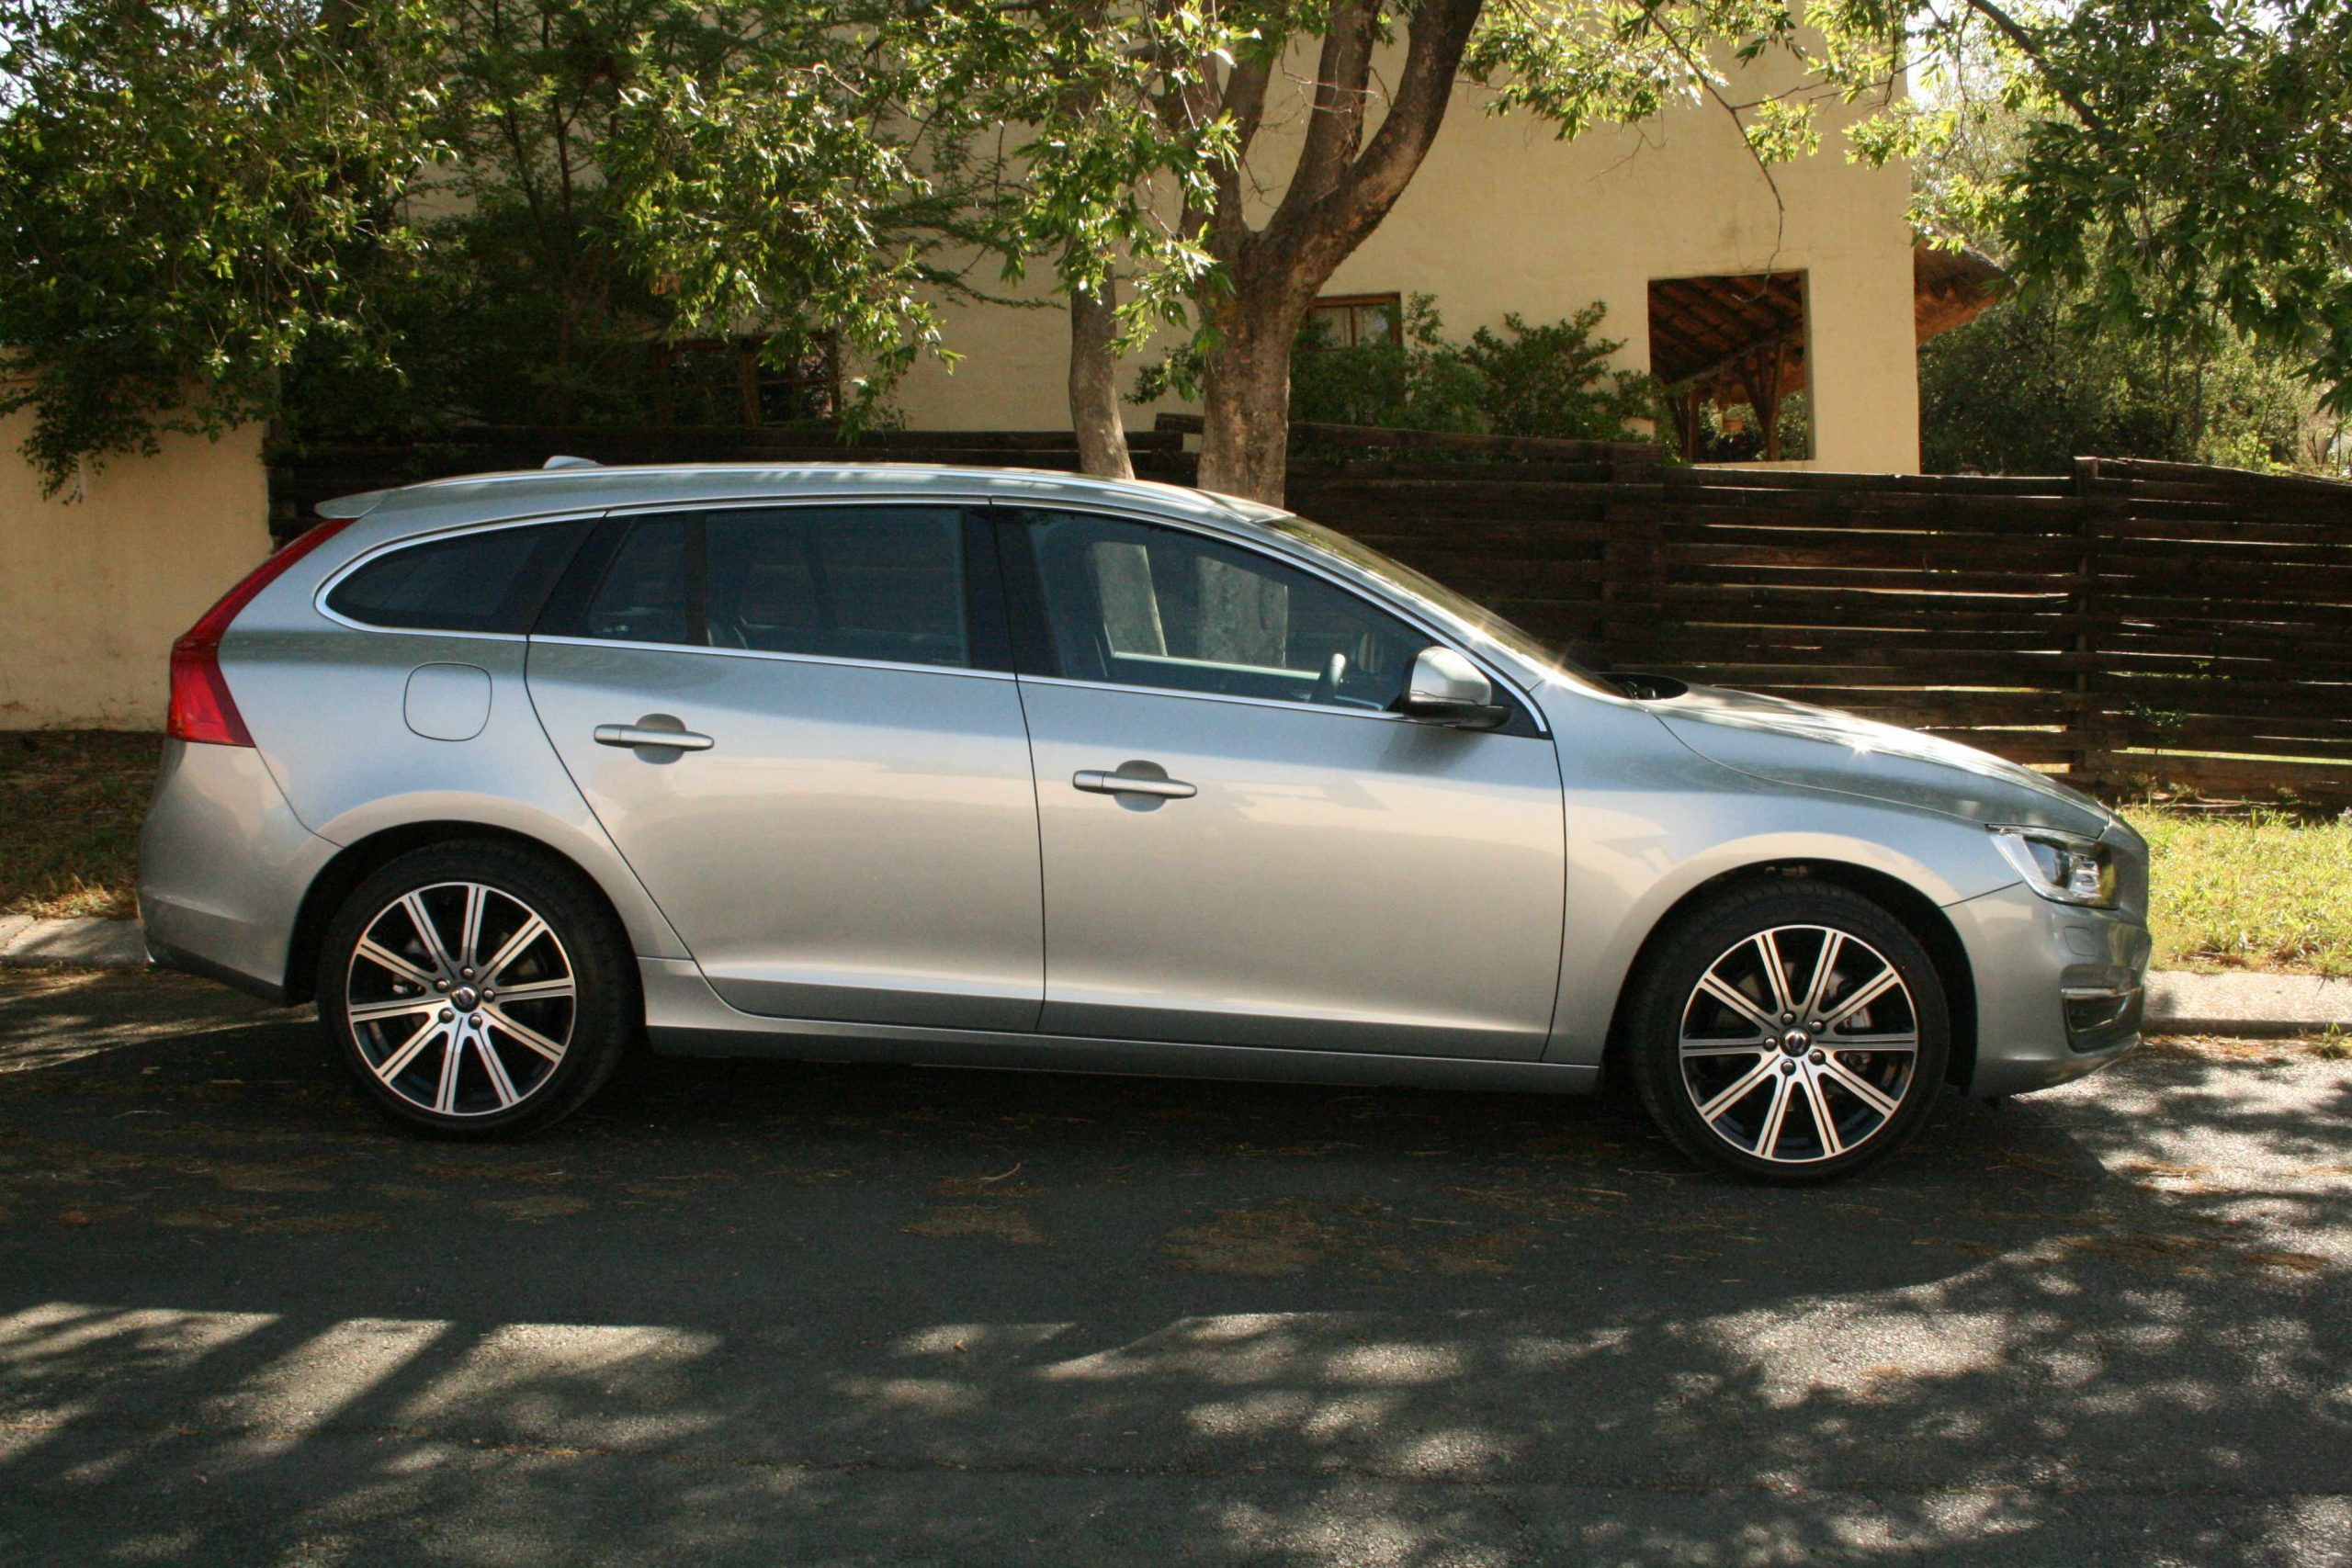 Volvo V60 D5 Geartronic Elite (2013): New Car Review – Surf4cars